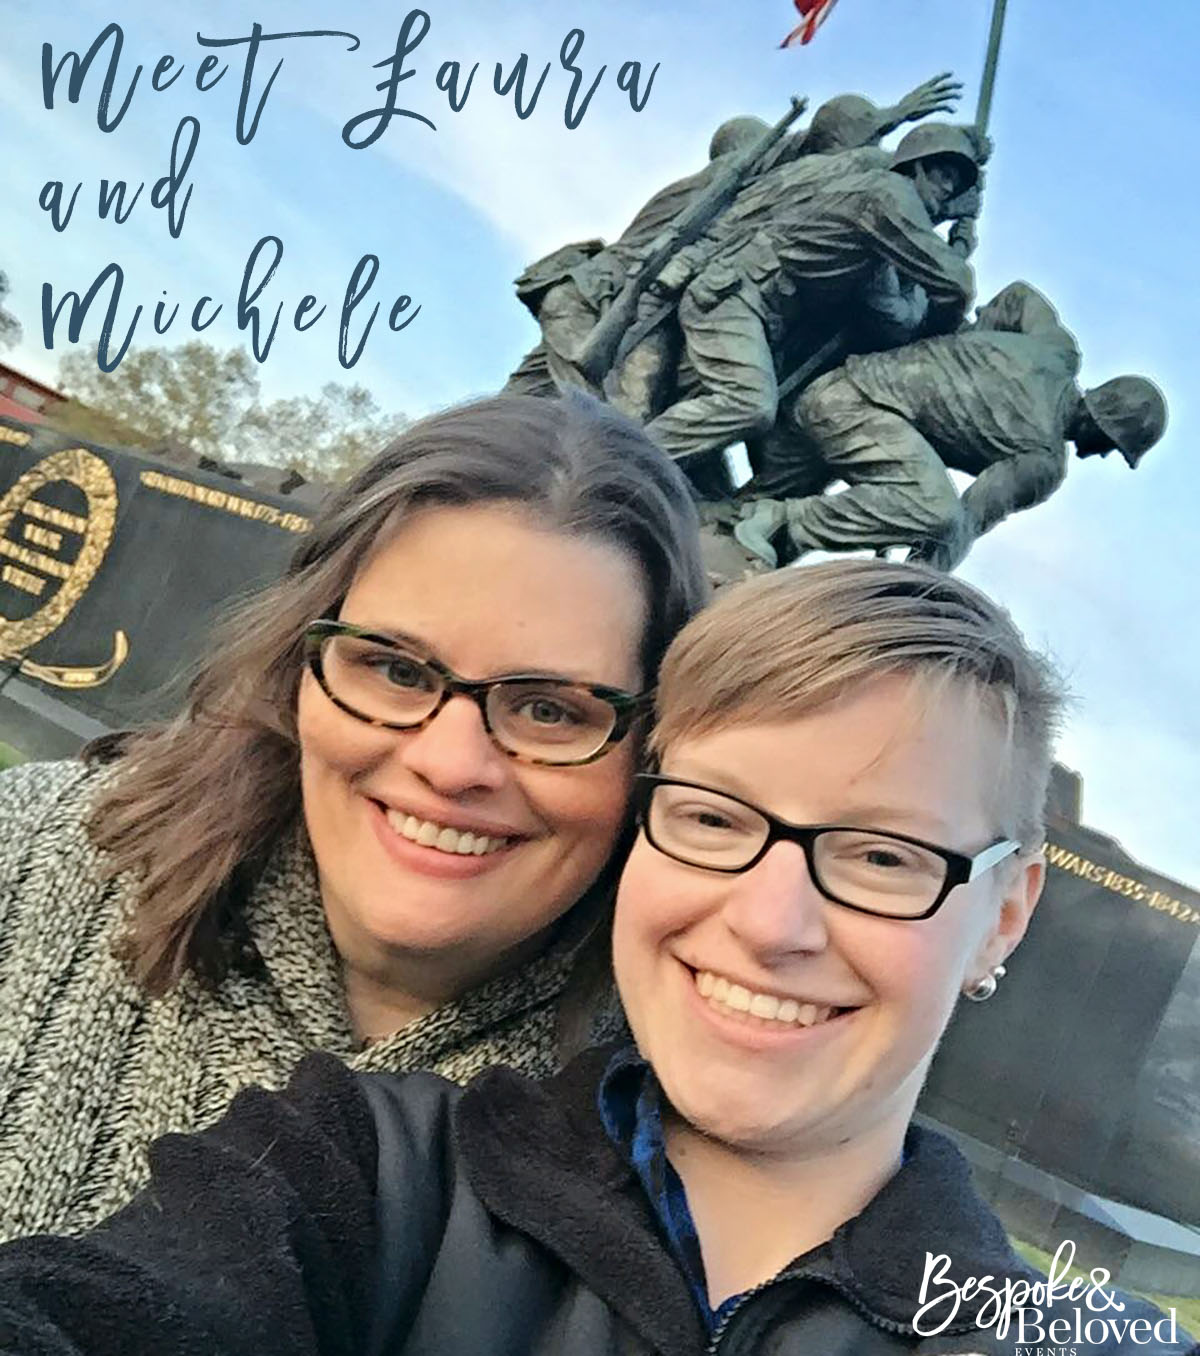 One stop on the 13-hour first date was at the Iwo Jima memorial.